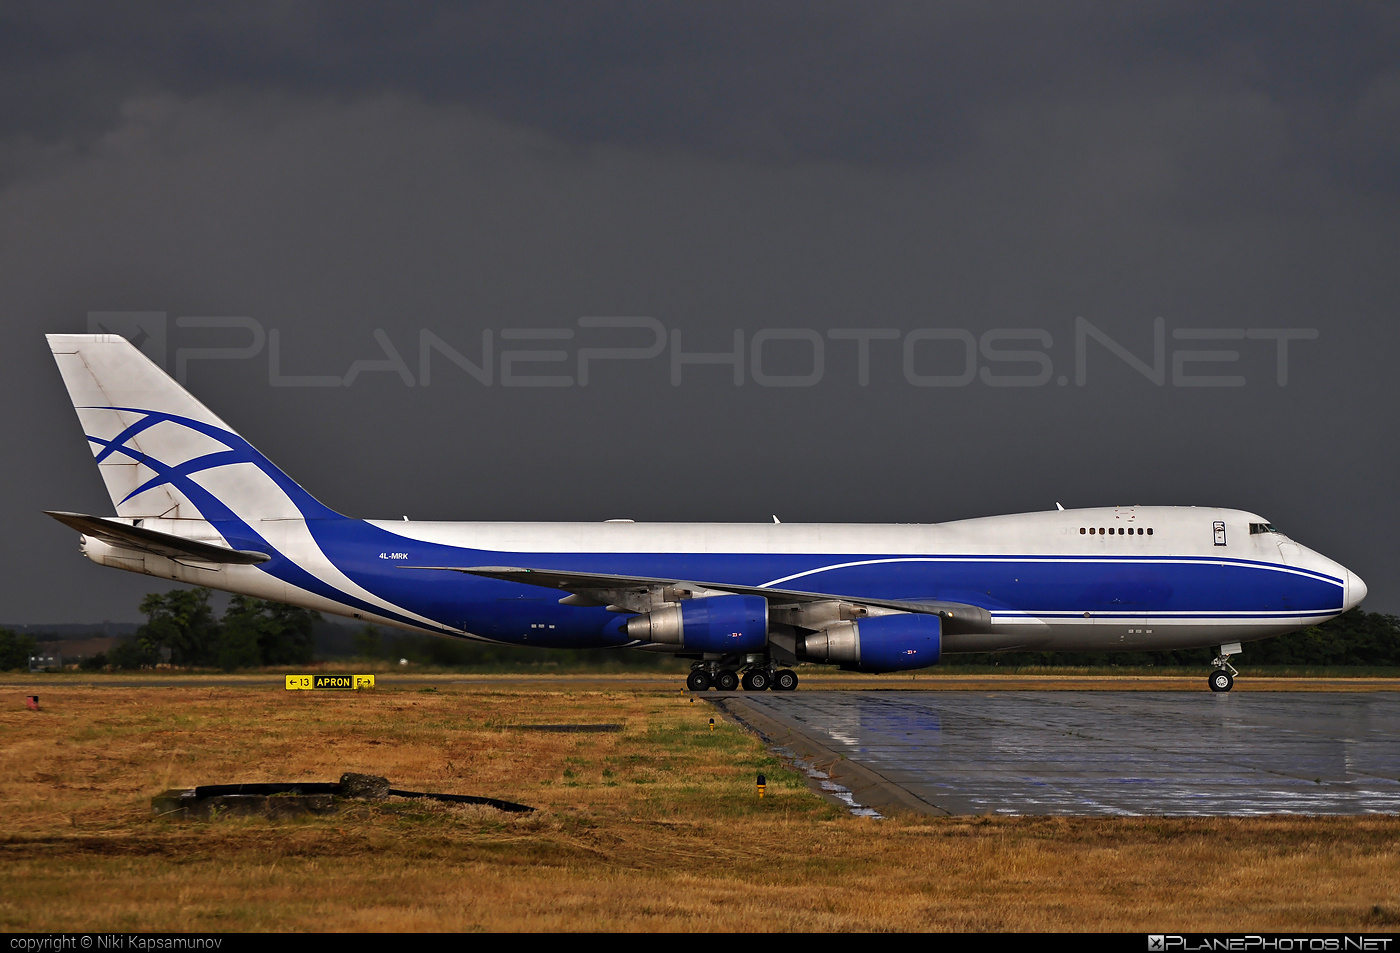 Boeing 747-200F - 4L-MRK operated by The Cargo Airlines #b747 #boeing #boeing747 #jumbo